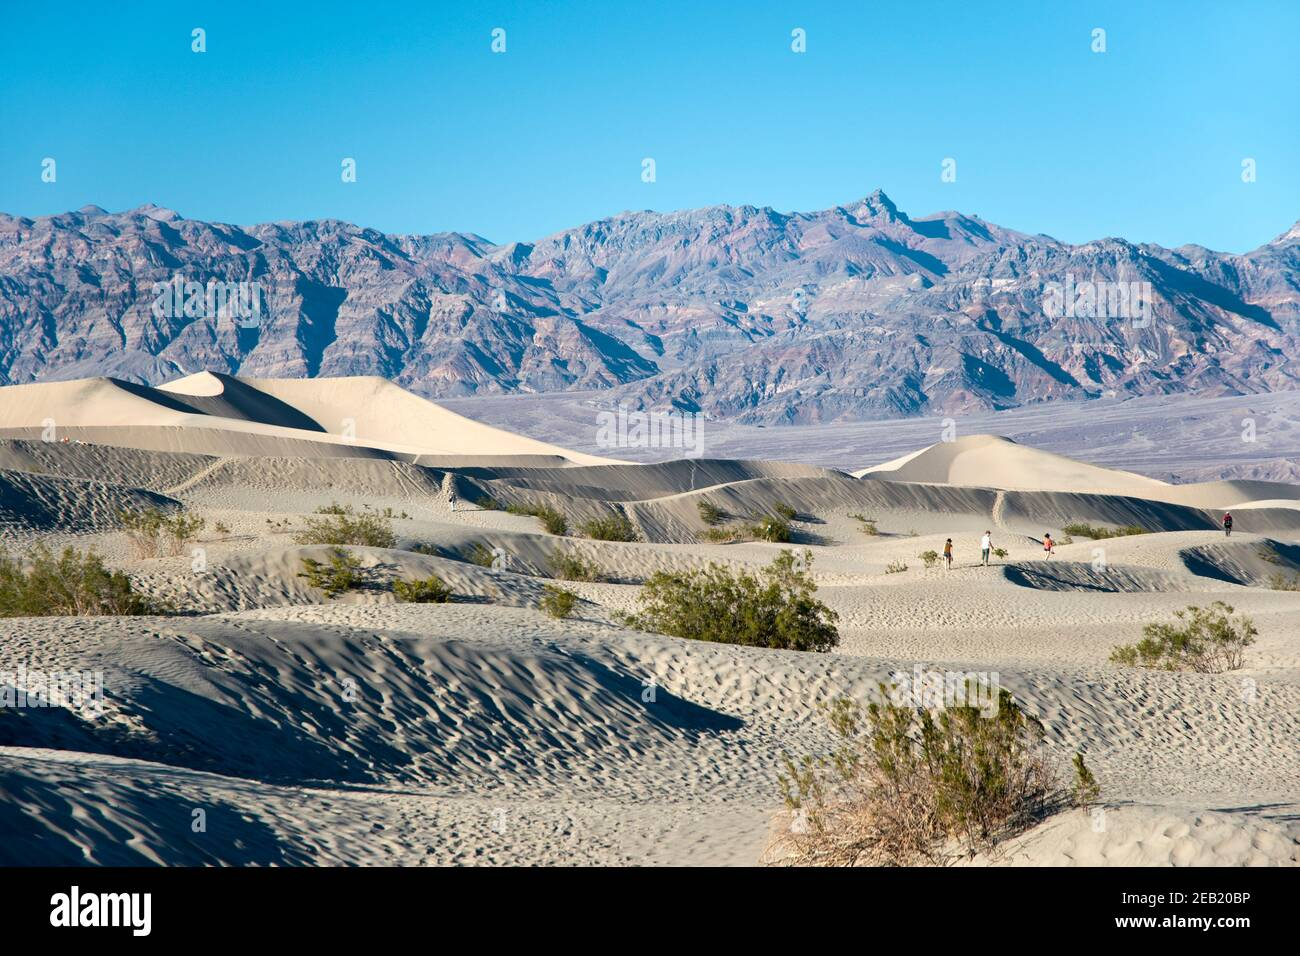 The Mesquite Flats Sand Dunes at the north end of Death Valley National Park, California. Stock Photo